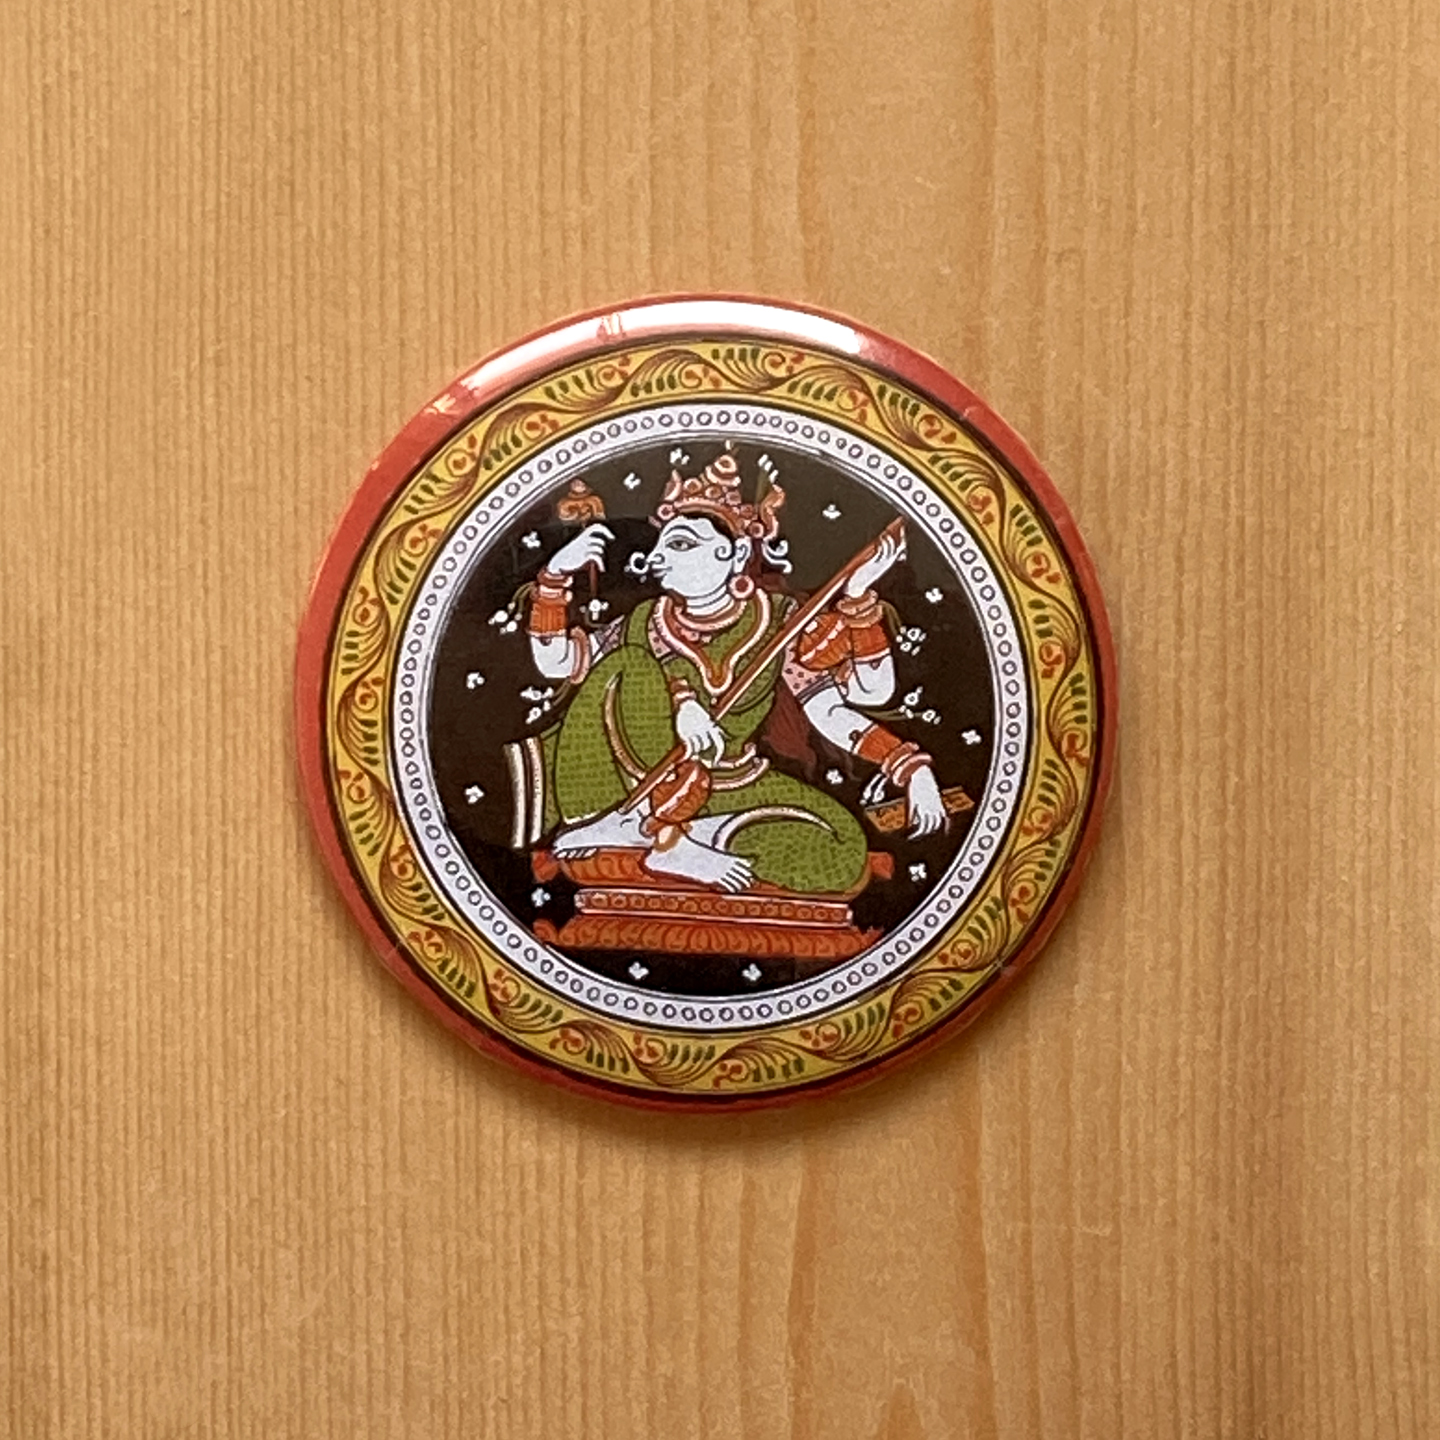 FRIDGE MAGNETS ROUND - Saraswati Patachitra